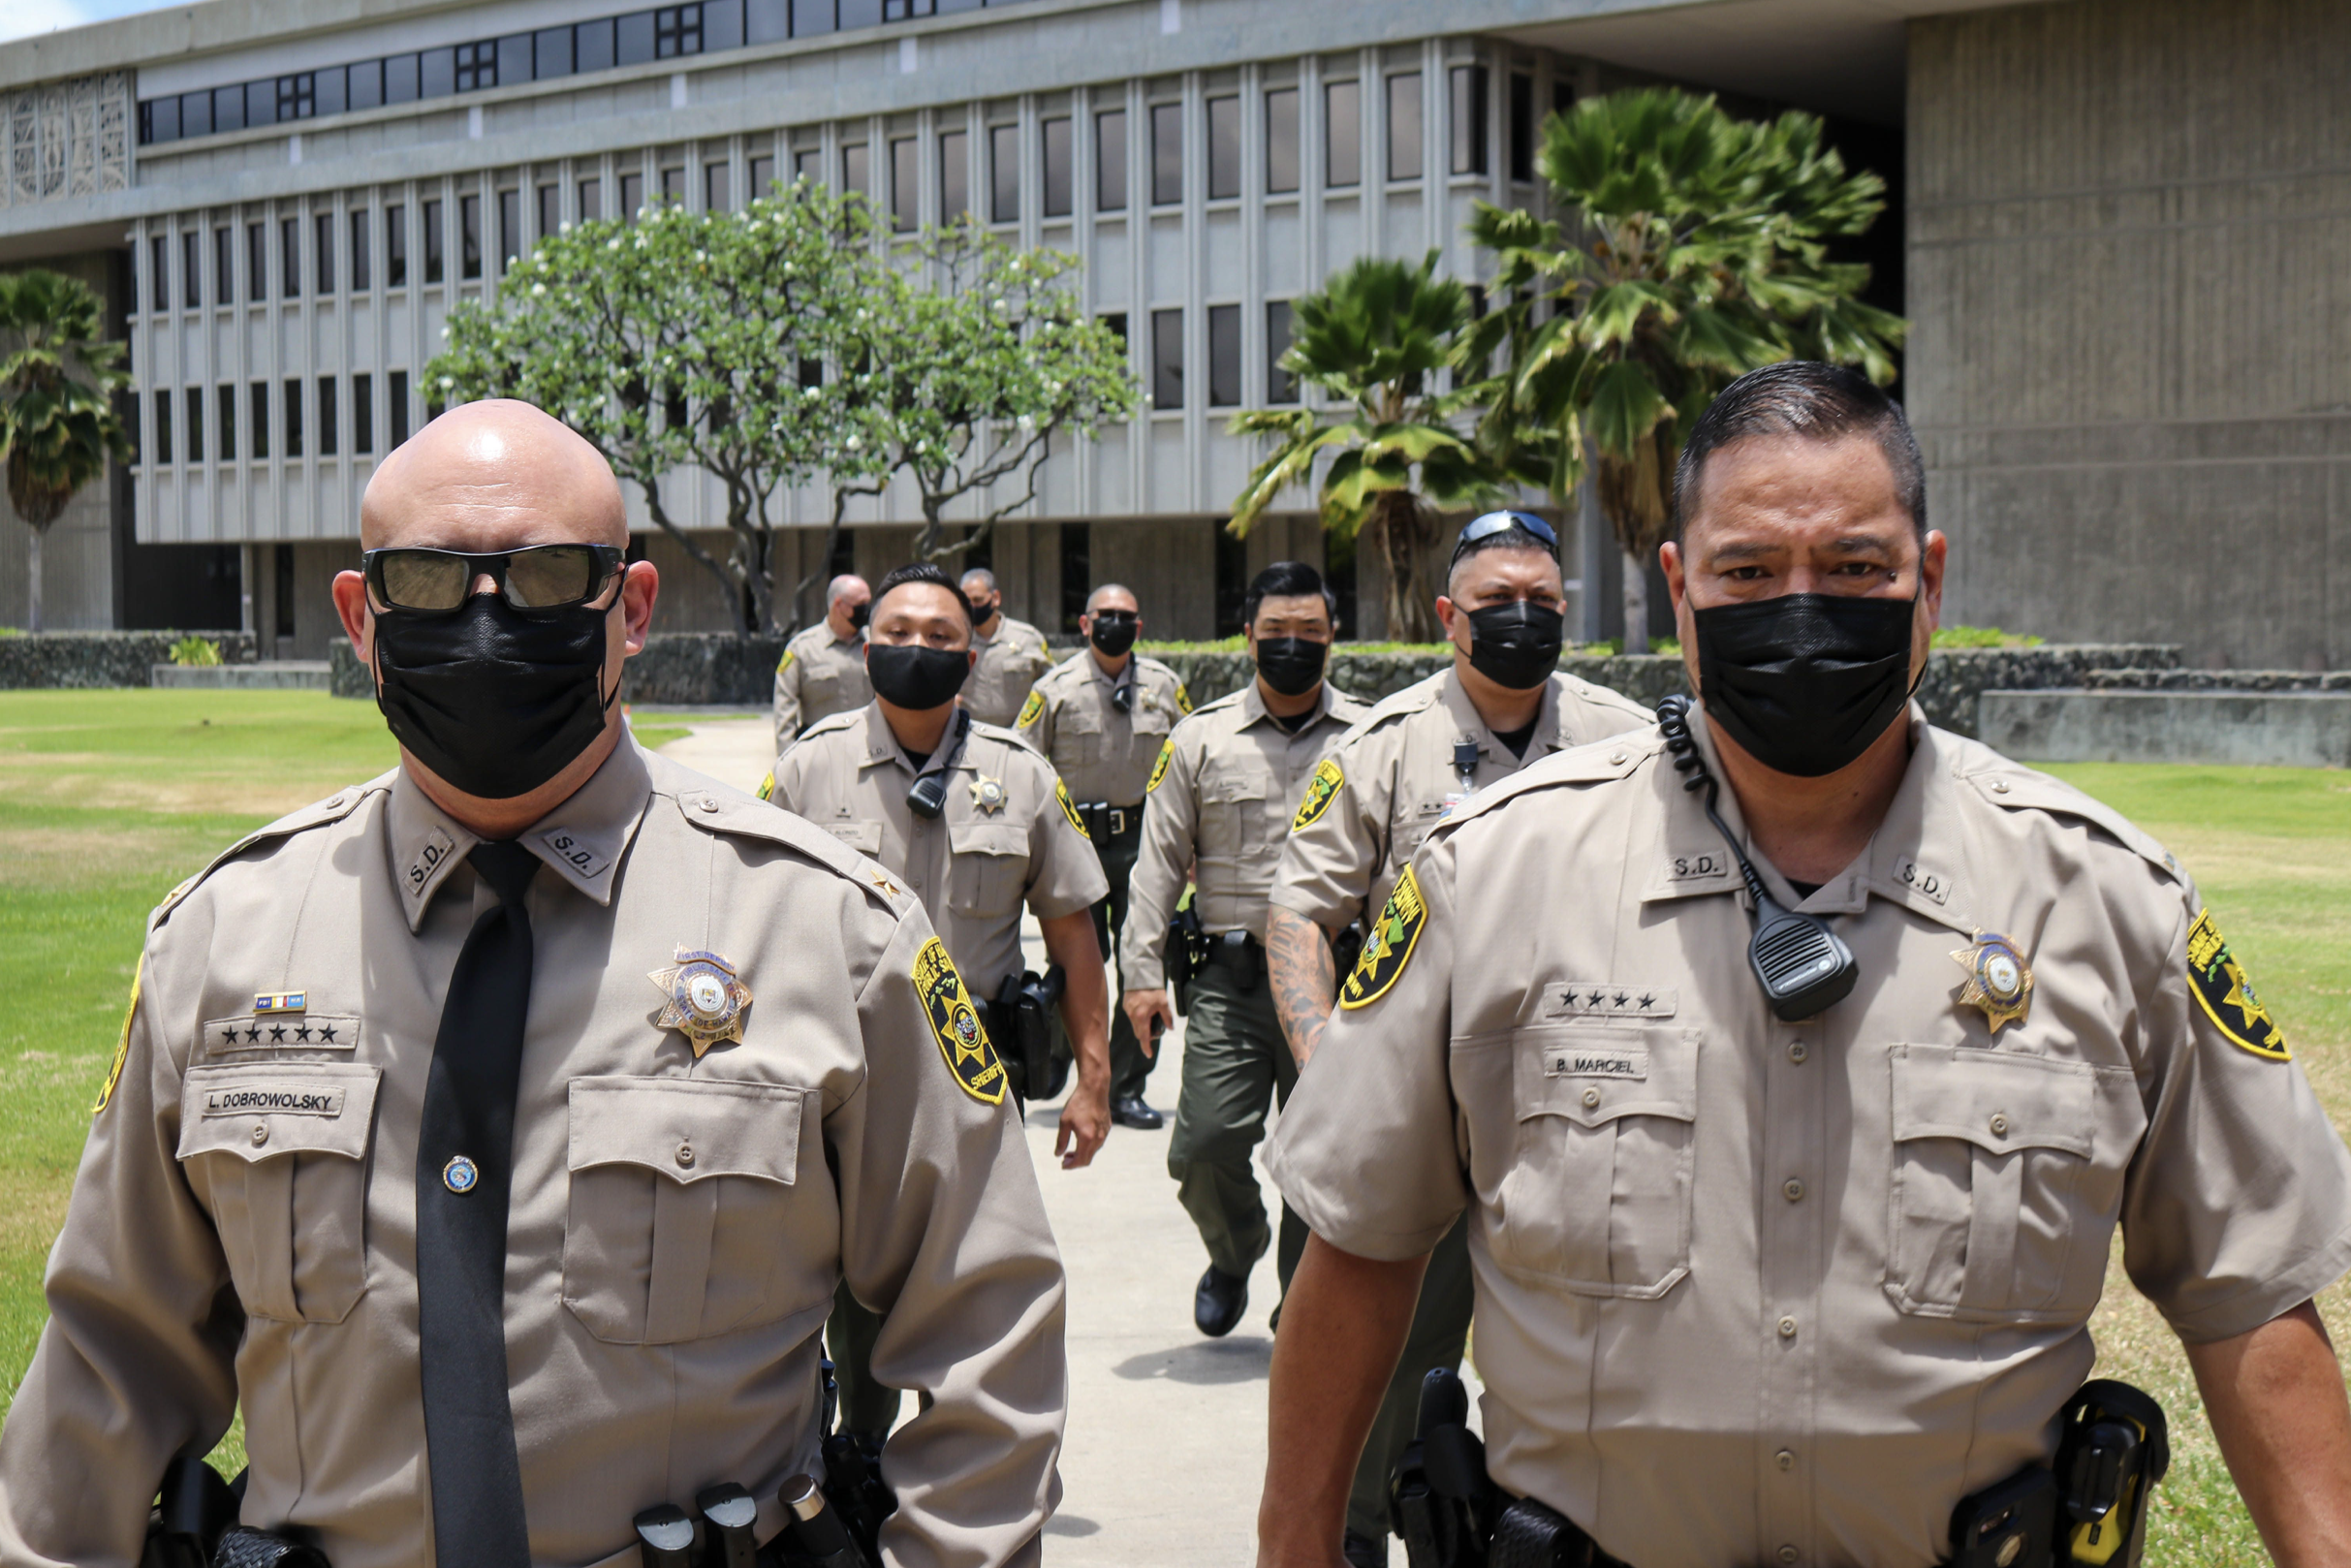 New Uniforms for Department of Public Safety Sheriff Division